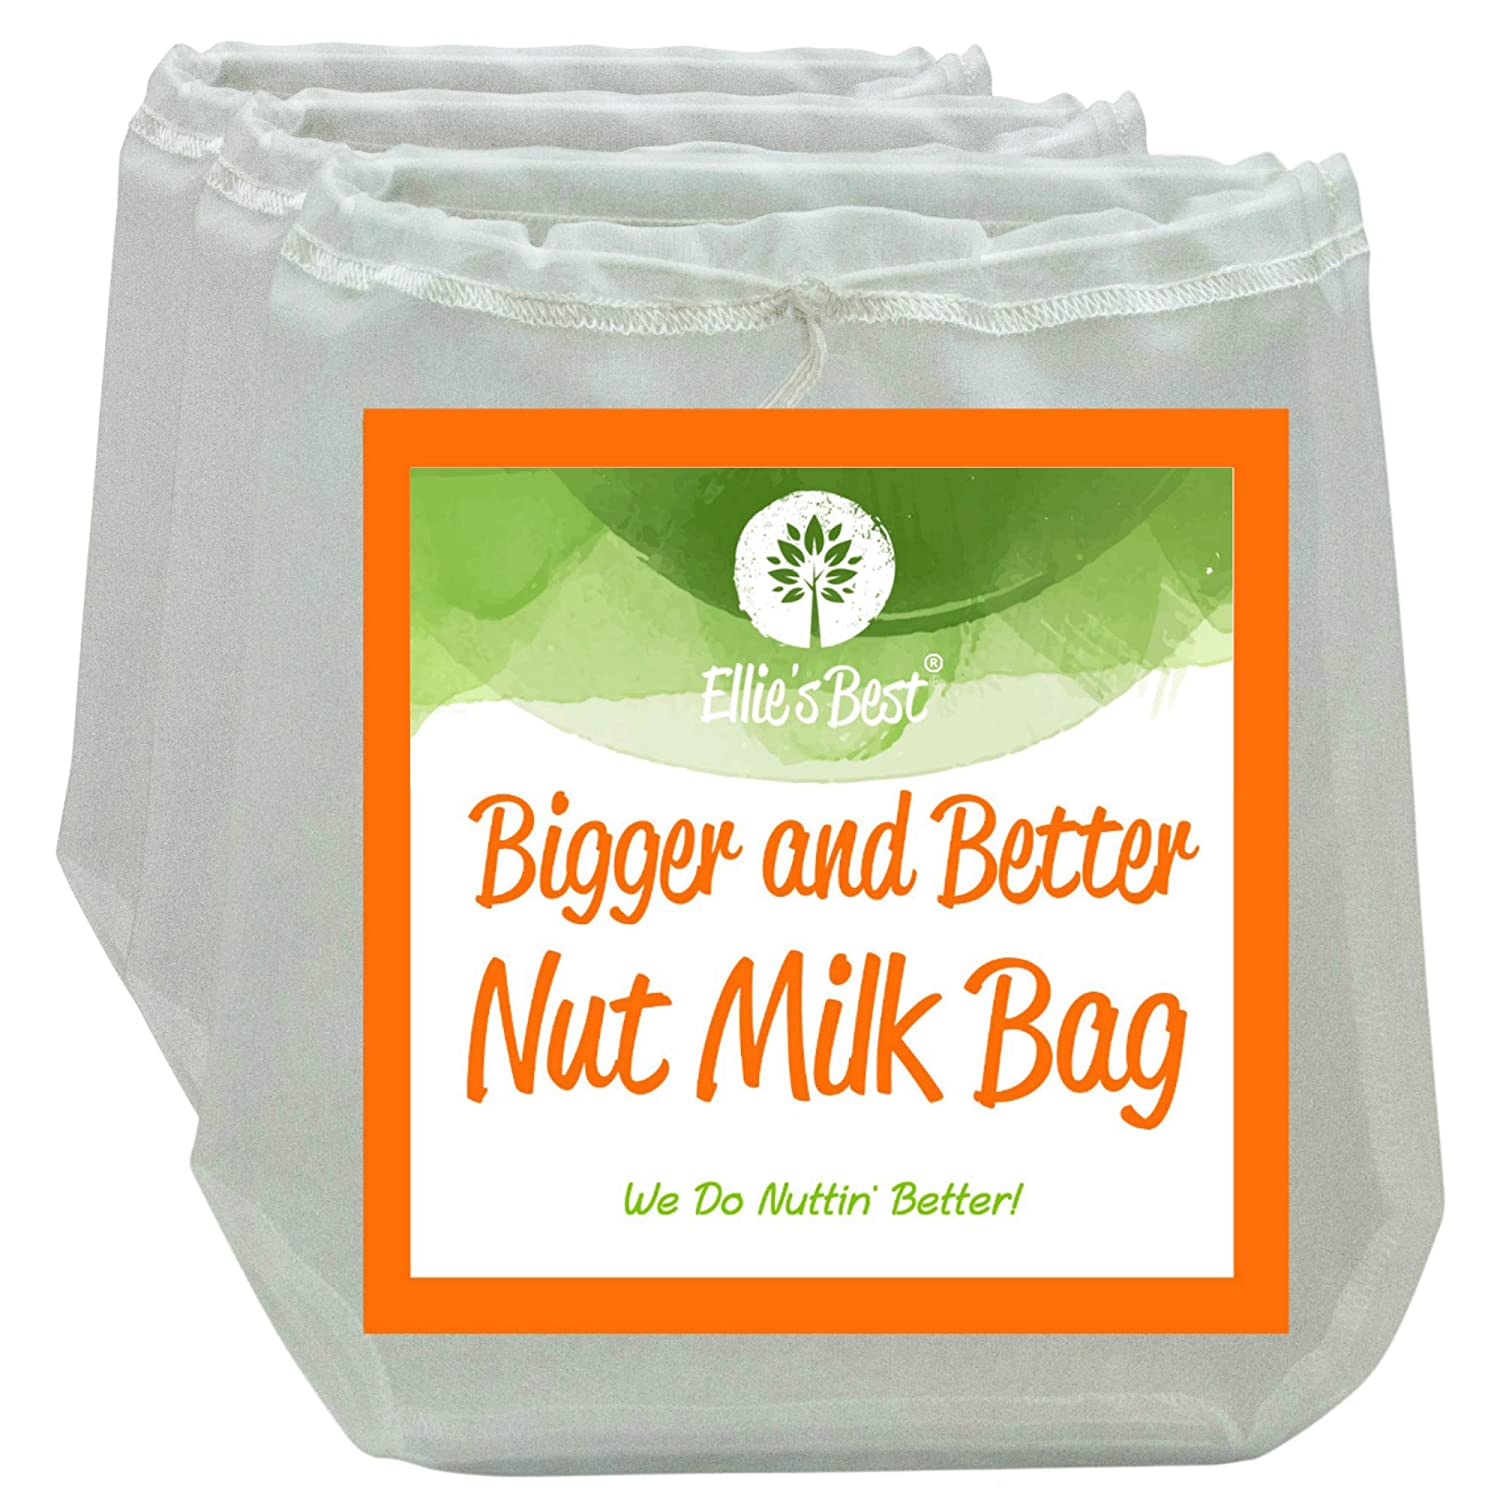 """PRO QUALITY NUT MILK BAGS - 3 Commercial Grade 12""""X12"""" Reusable Almond Milk Bags & All Purpose Food Strainer - Fine Mesh Nylon Cheesecloth & Cold Brew Coffee Filter - Free Recipes & Videos (3 Pak)"""